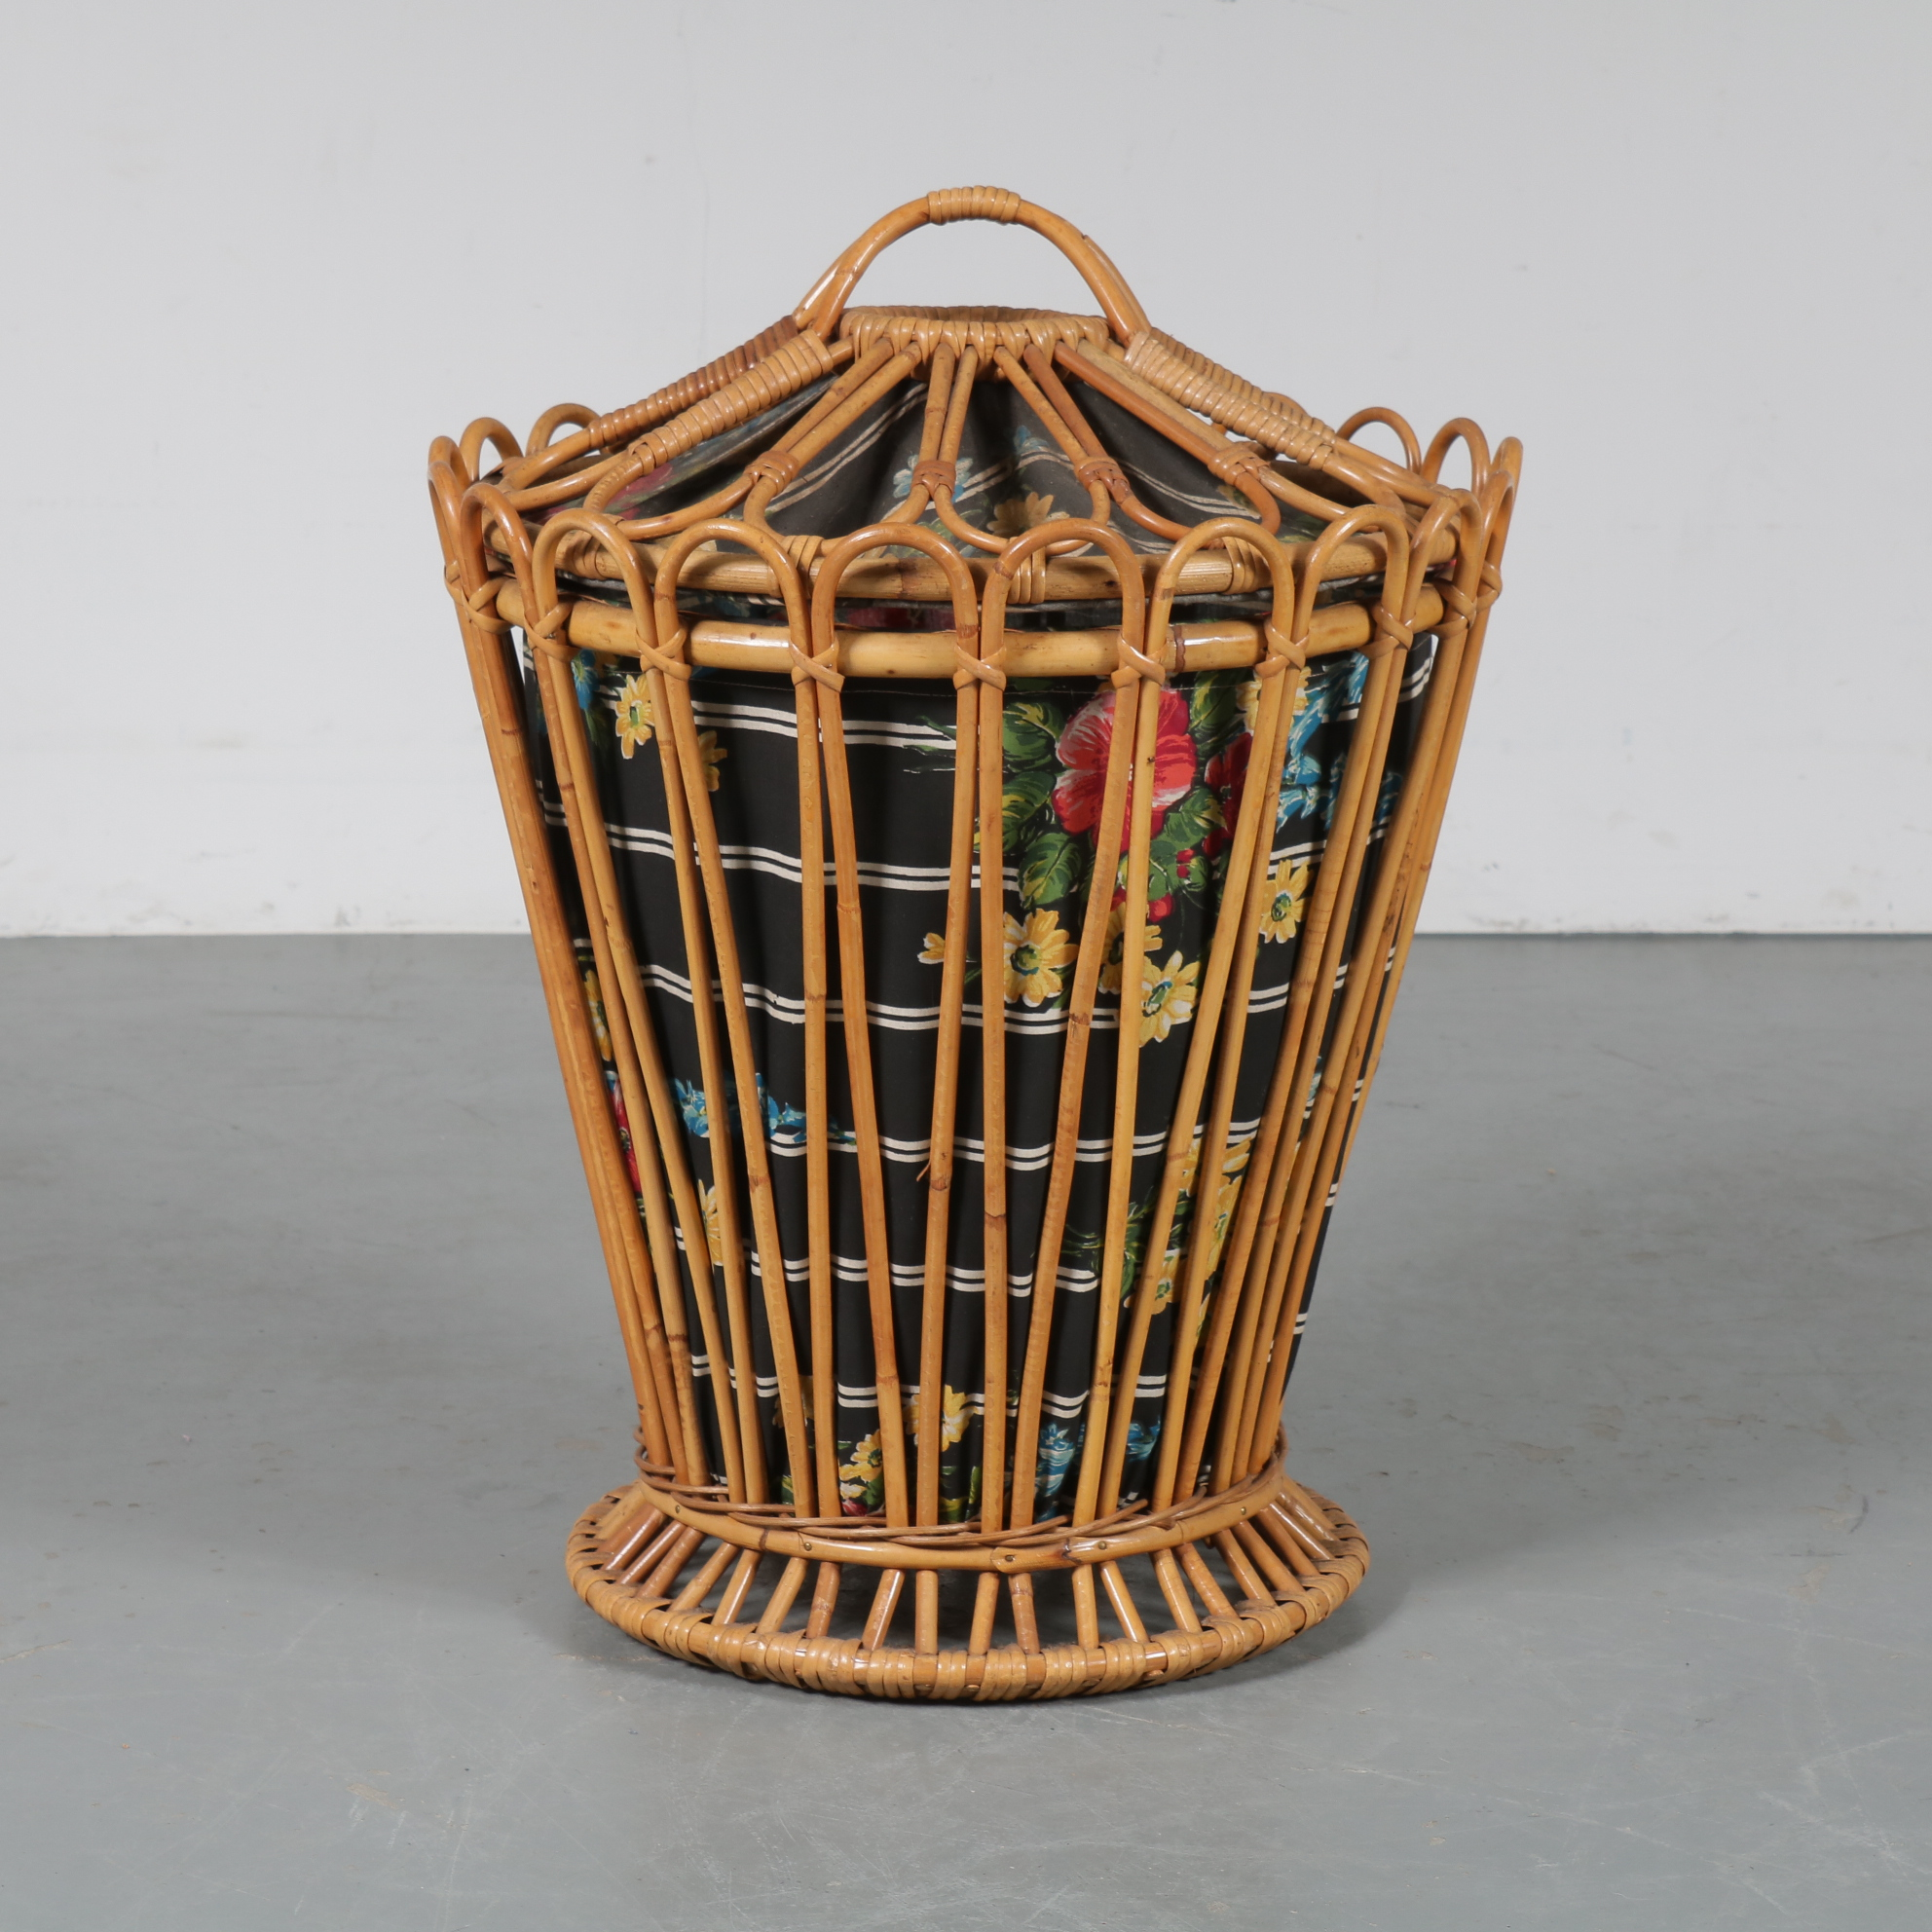 m23336 1950s Rattan washing basket with fabric interior, Albini style Italy